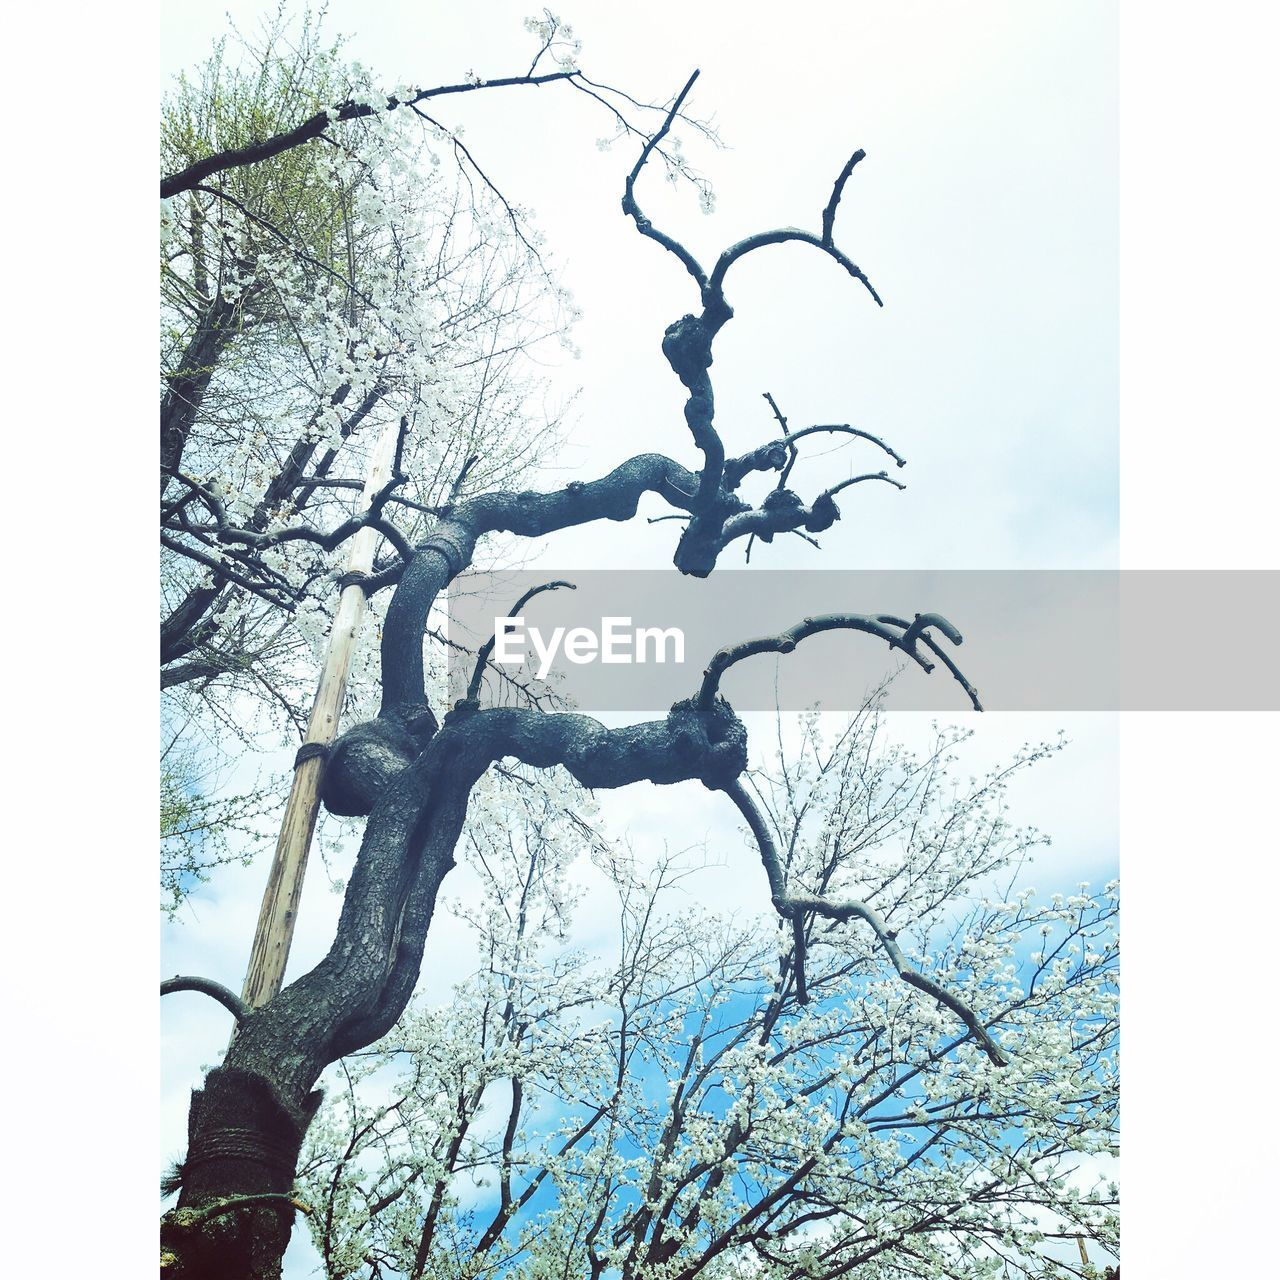 tree, bare tree, branch, tree trunk, day, low angle view, tranquility, sky, no people, outdoors, nature, lone, beauty in nature, dead tree